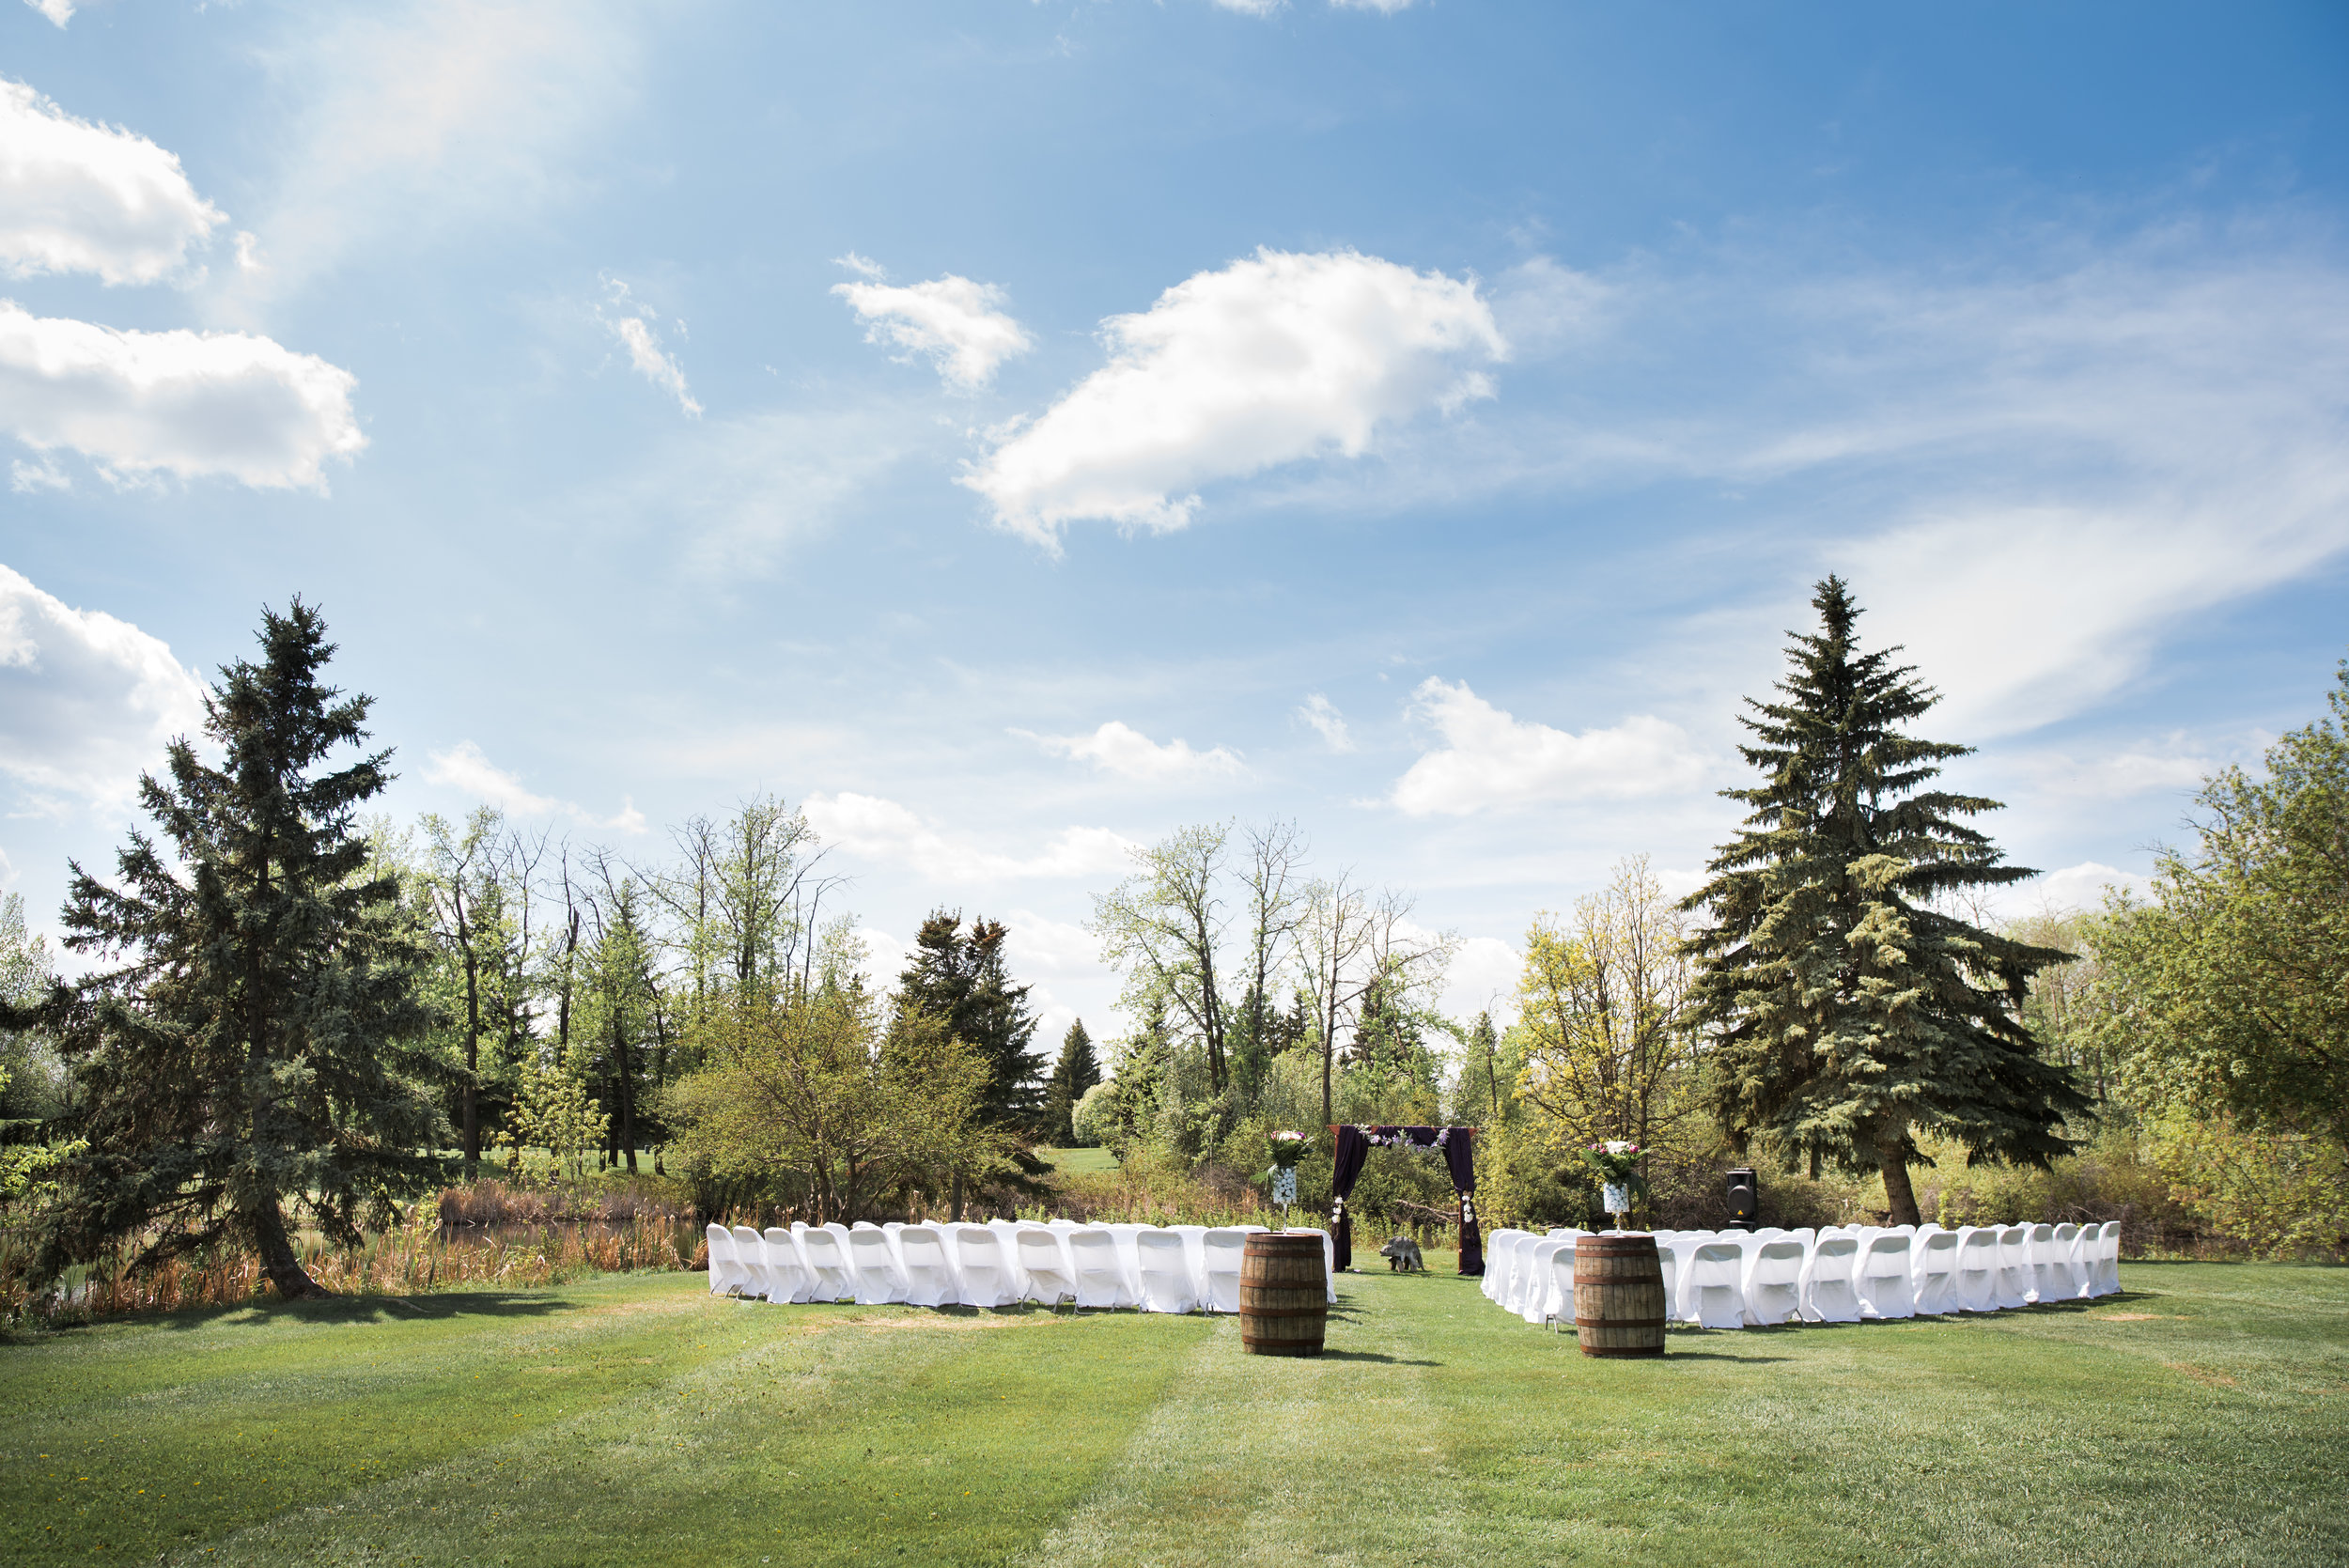 This particular ceremony was set up for 110 guests